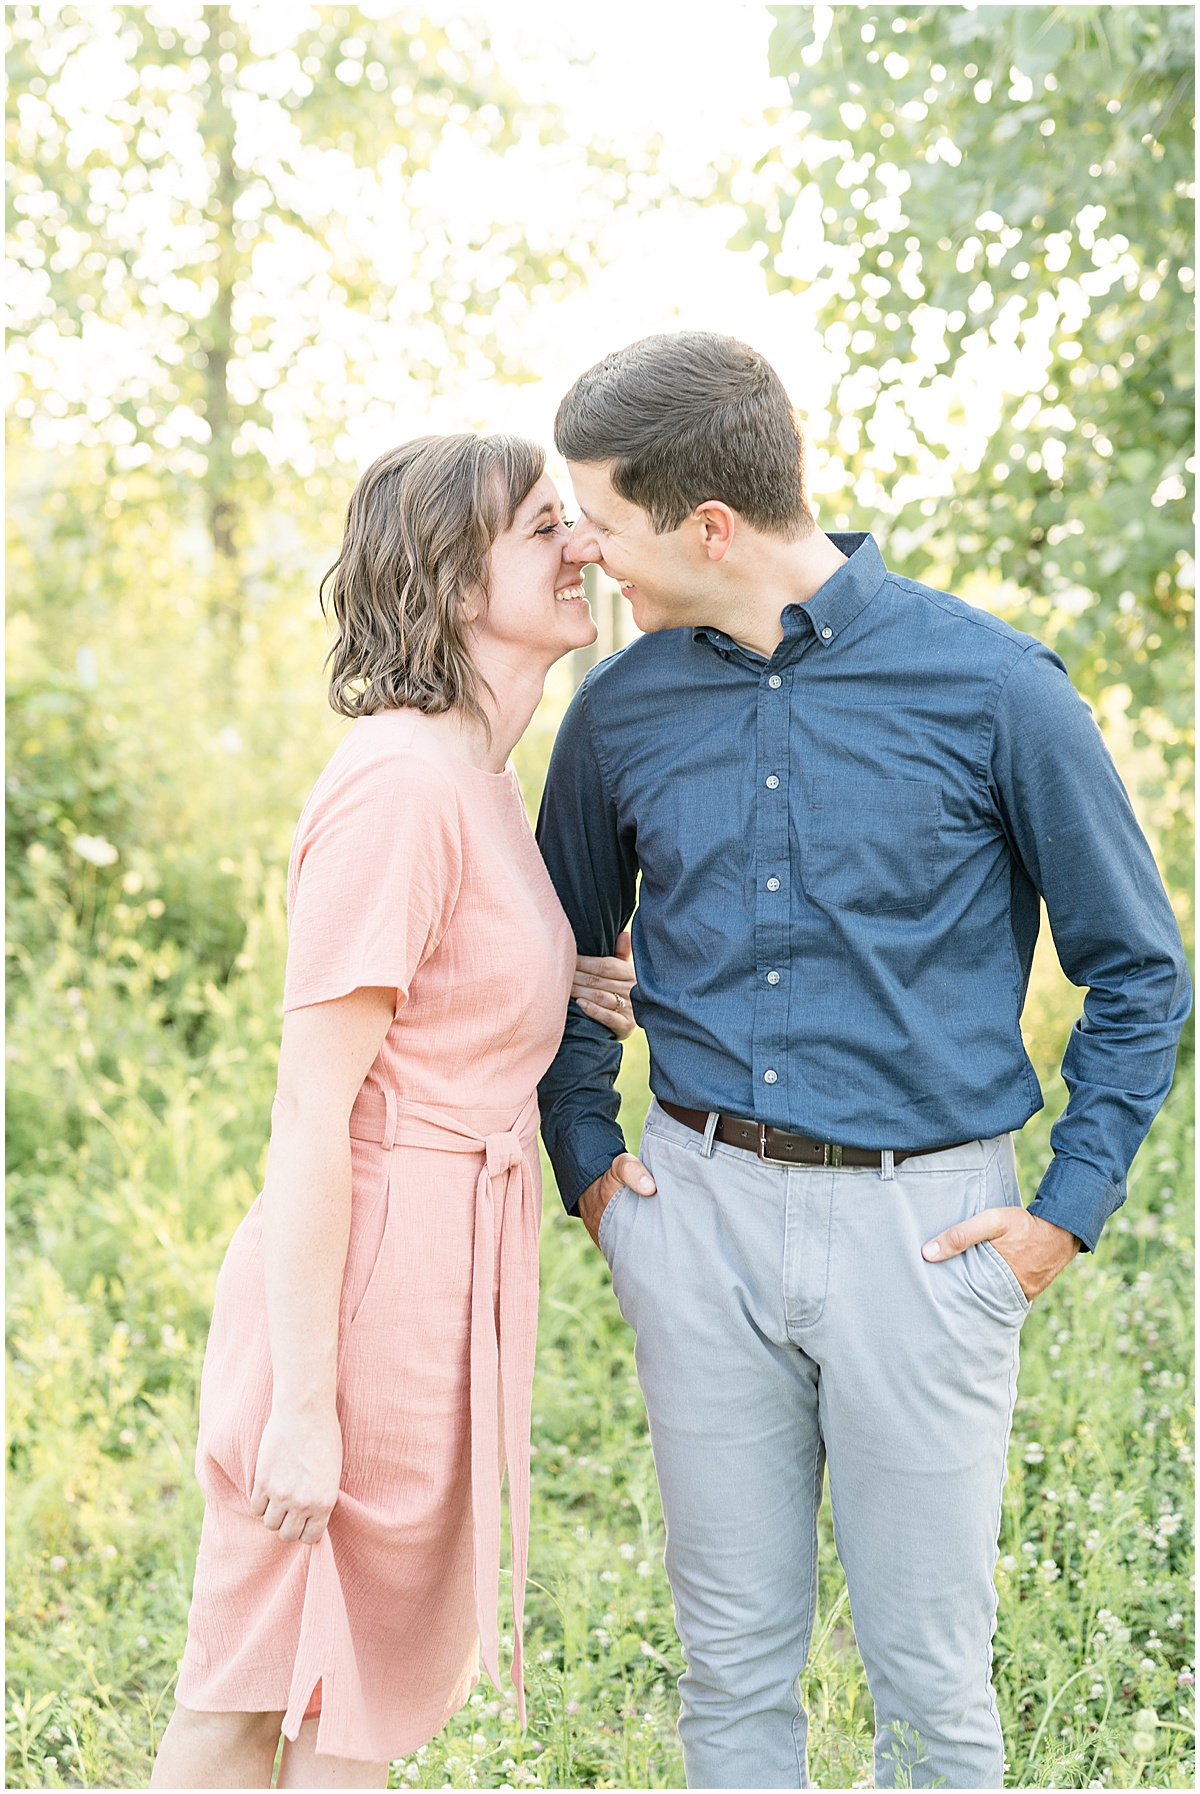 Engagement photos at Strawtown Koteewi Park in Noblesville, Indiana by Indianapolis wedding photographer Victoria Rayburn Photography